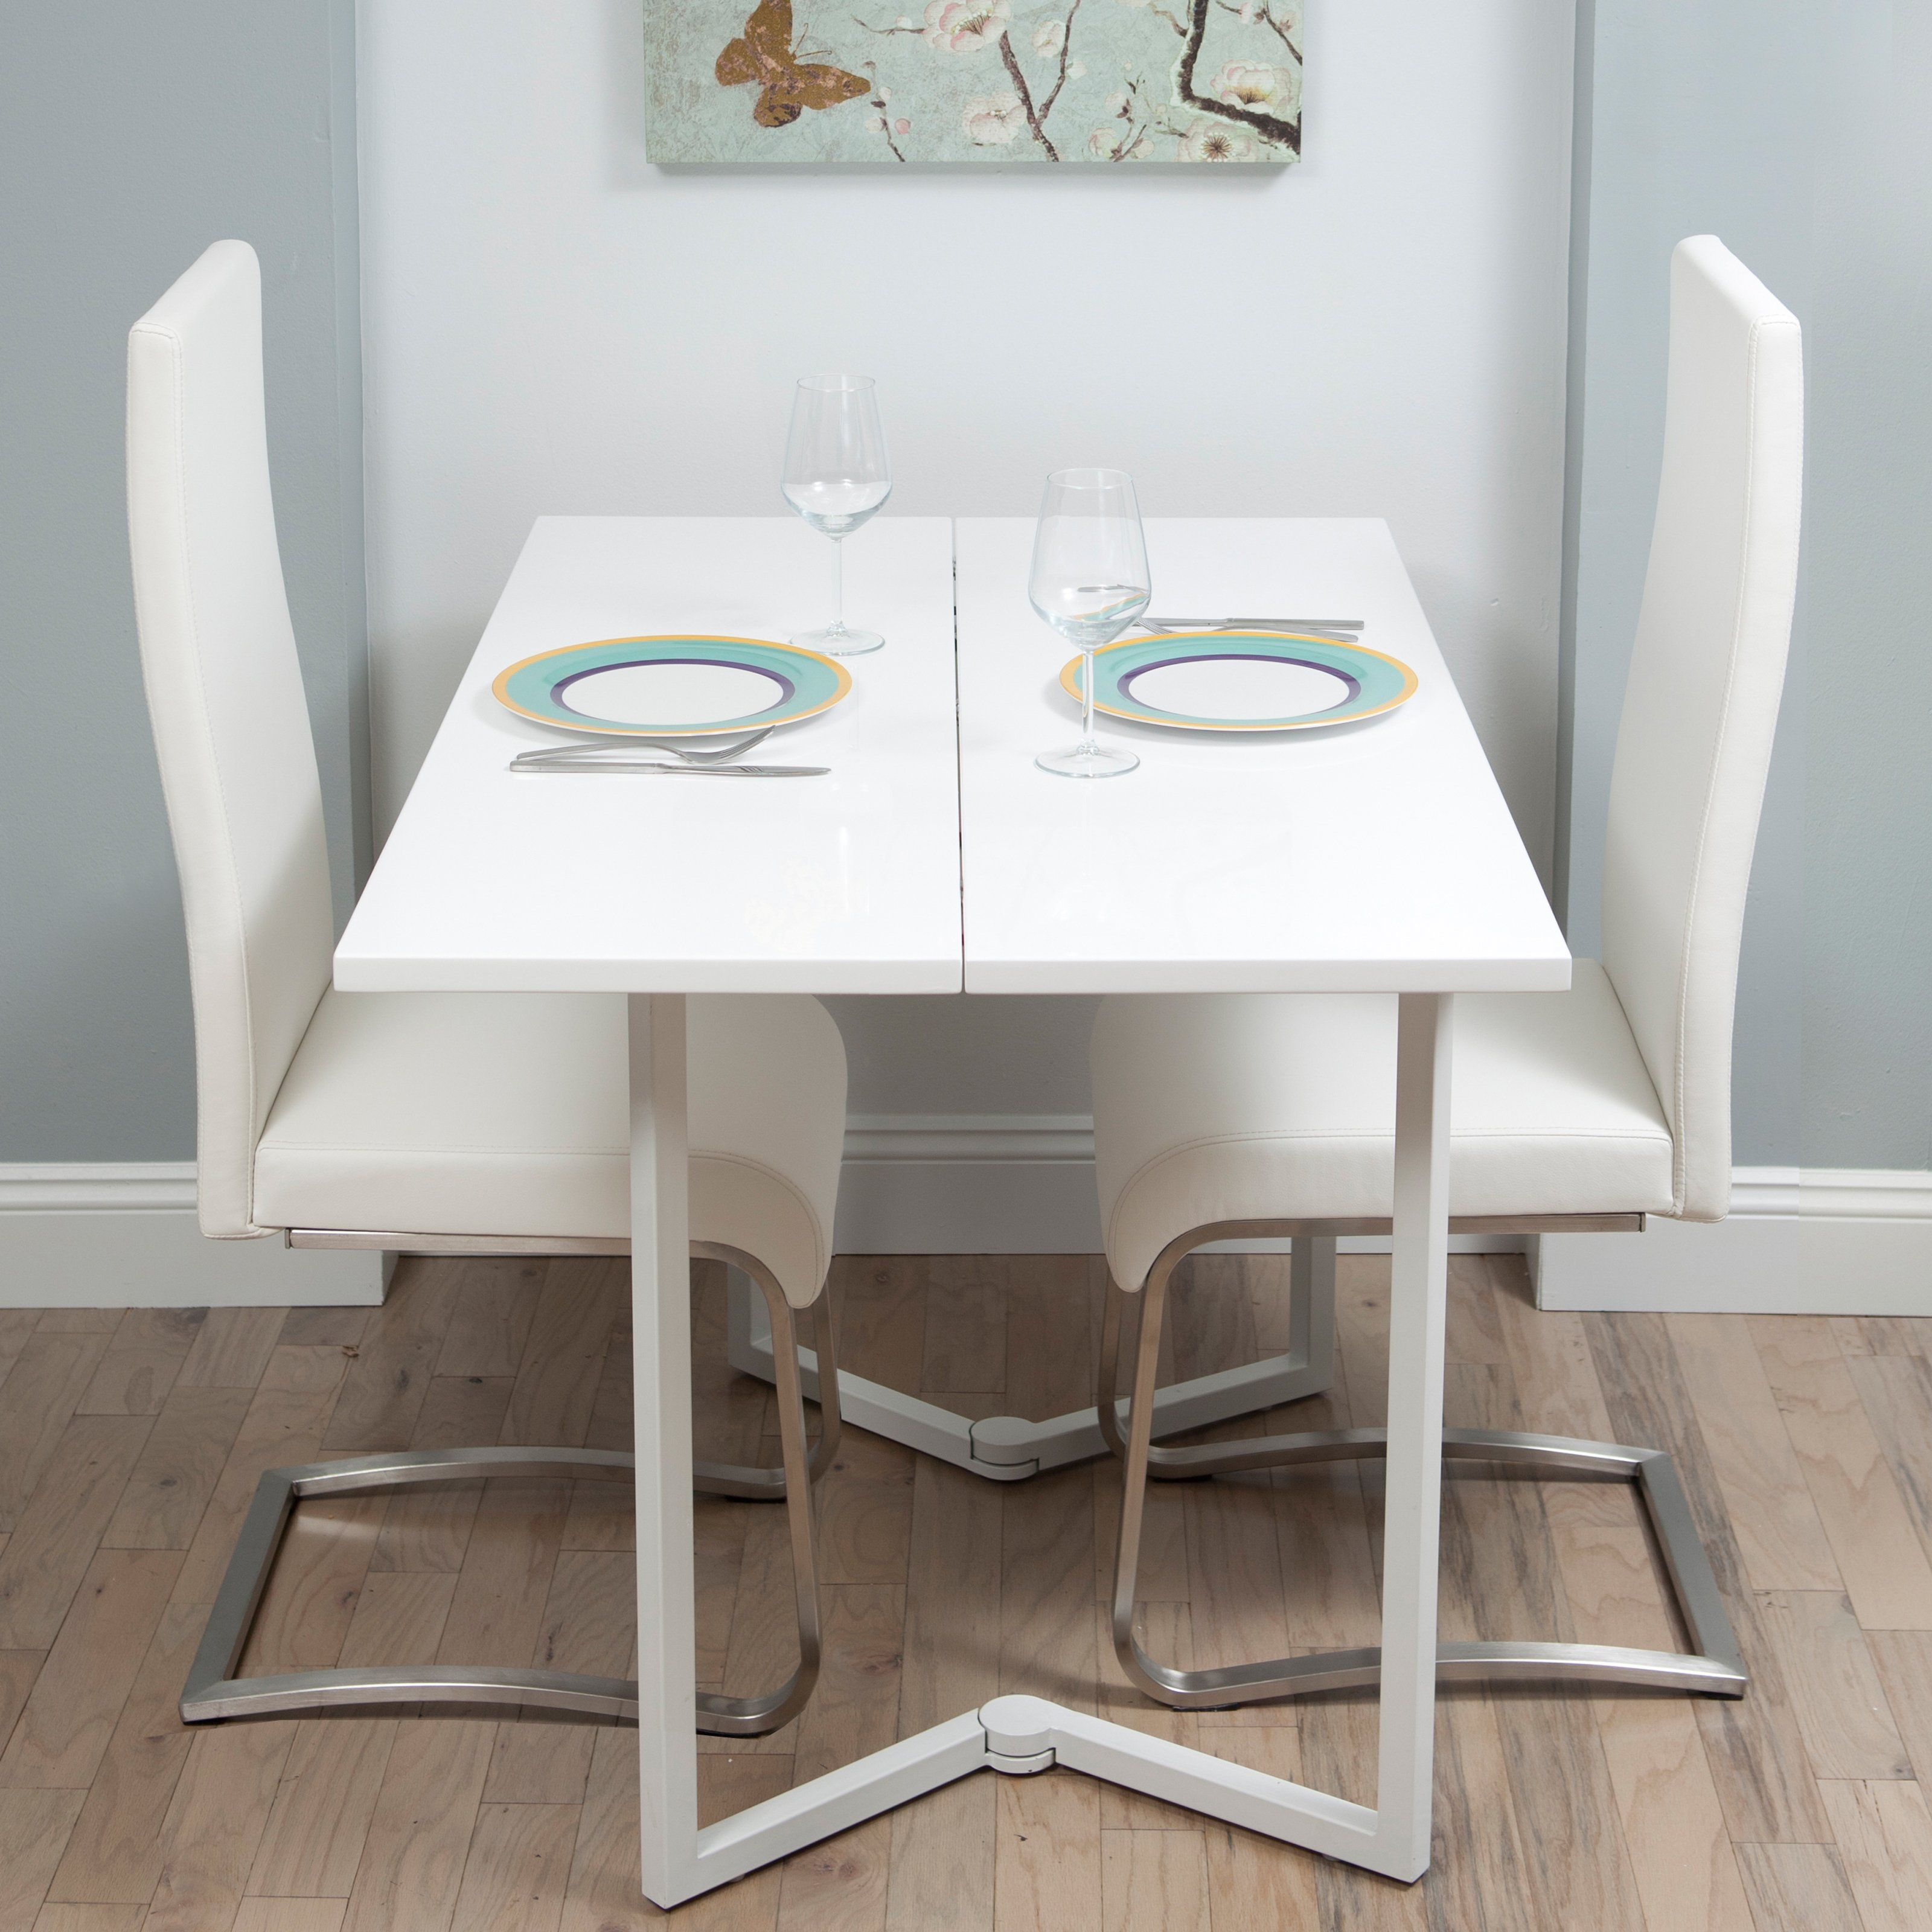 Trend Decoration Foldable Dining Table Sets In Chennai Wall